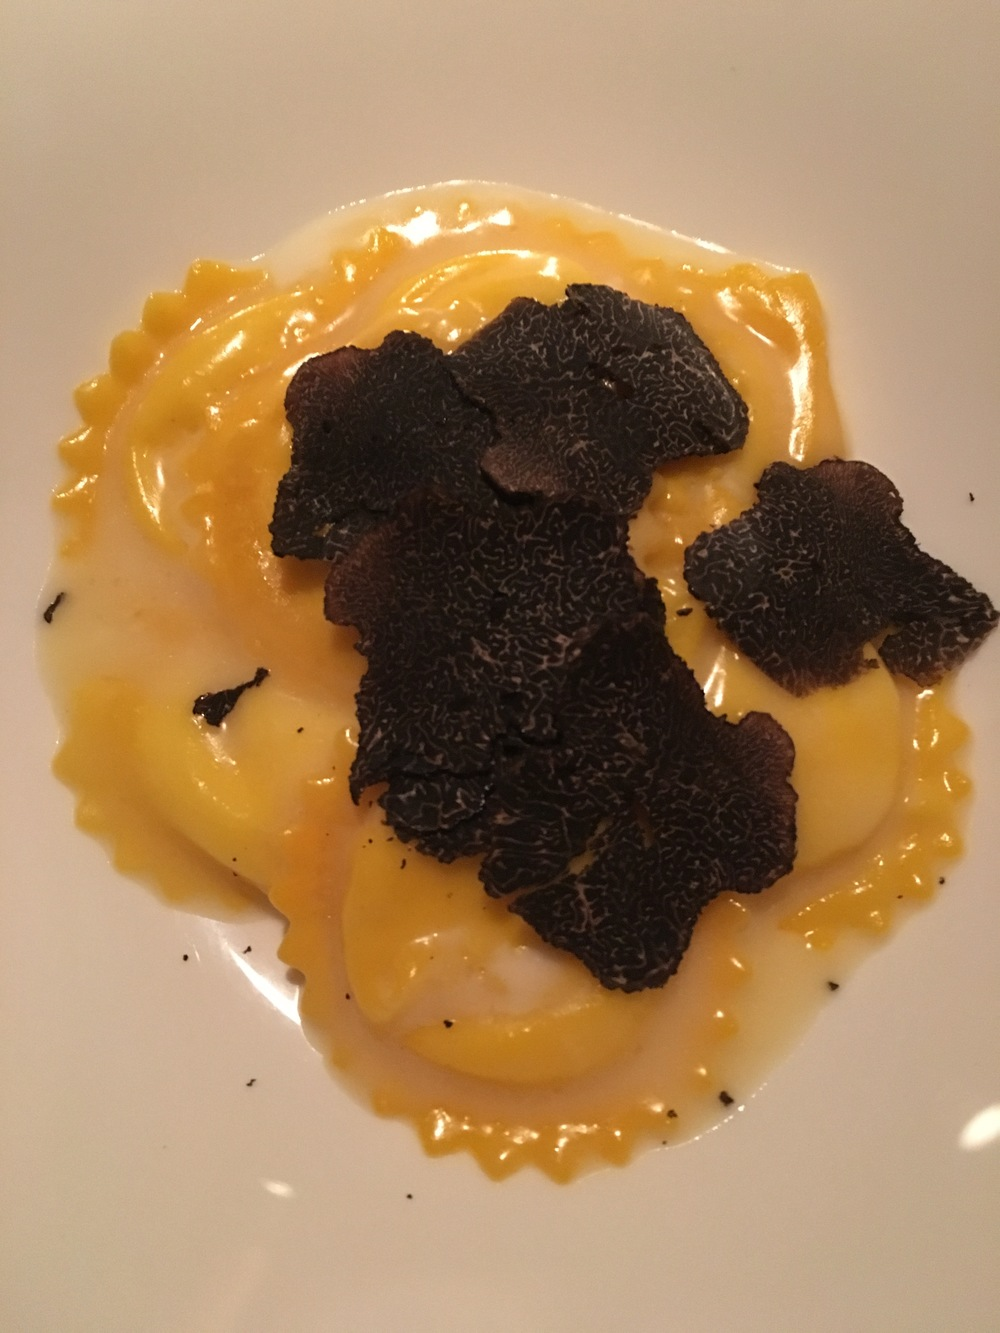 The incredible truffle pasta